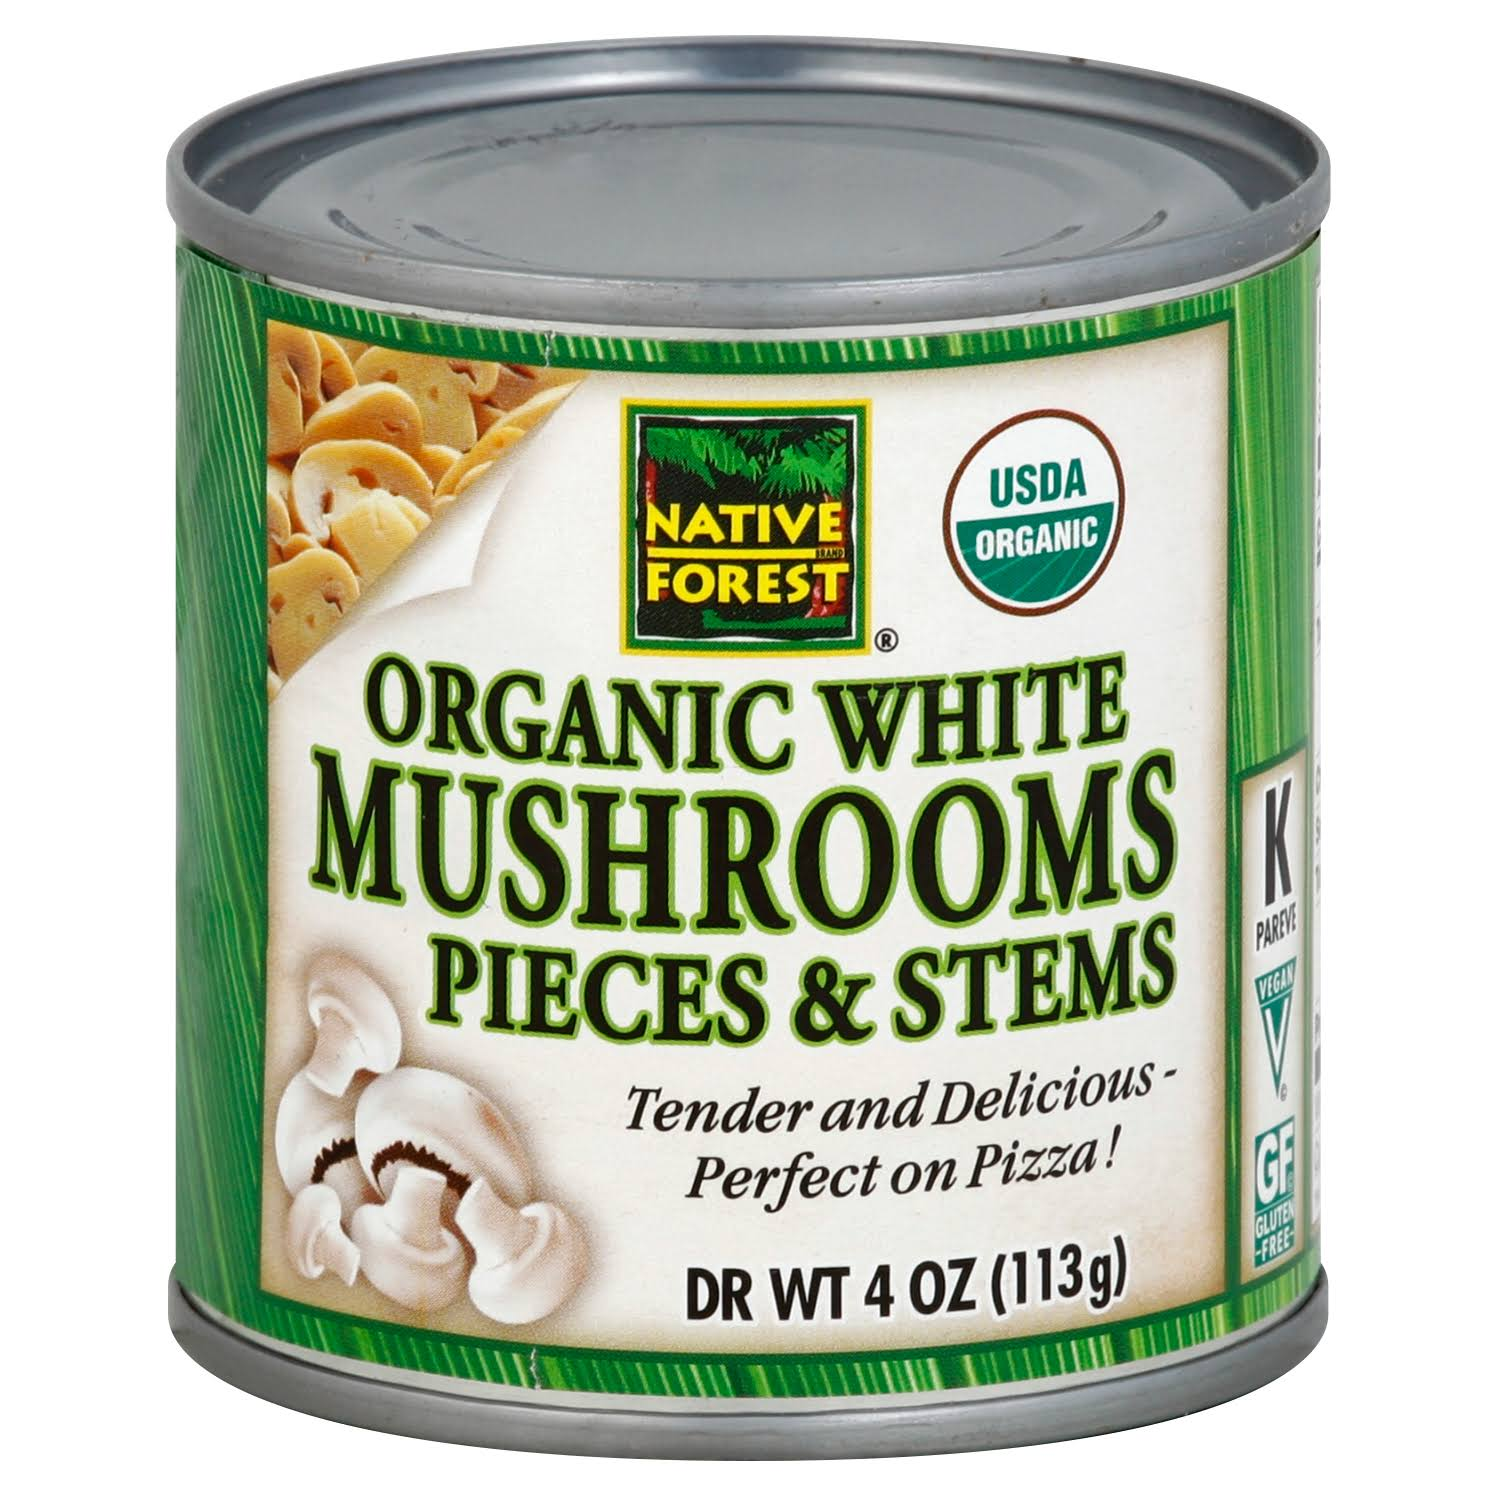 Native Forest Organic Mushrooms - Pieces and Stems, 7oz